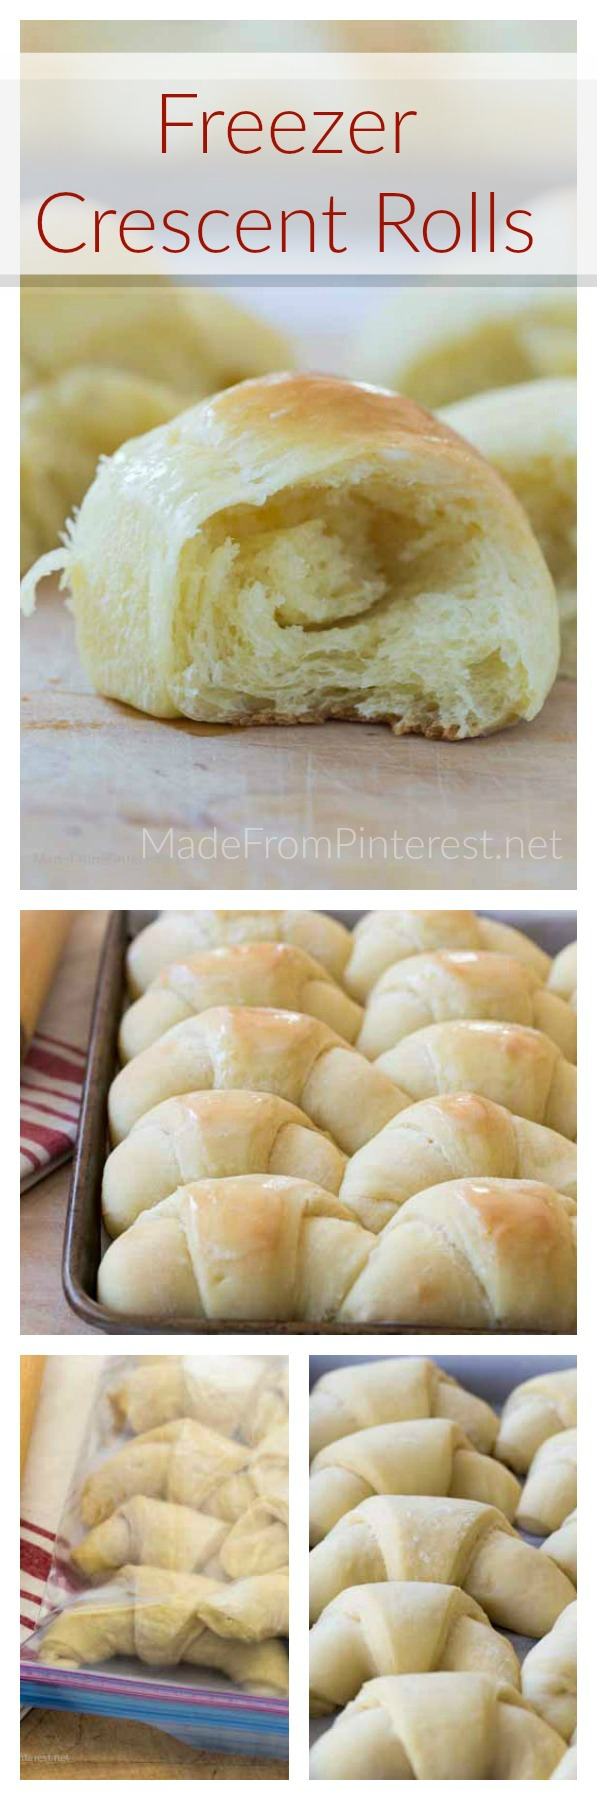 You do not have to spend your entire day in the kitchen to have a great meal! One of my favorite parts of dinner is warm, freshly baked rolls right out of the oven. These Freezer Crescent rolls are amazing! Everyone flips over them. But getting the timing right and finding time to make homemade rolls when there is so much cooking going on can get kind of crazy. These Freezer Crescent Rolls are delicious, look beautiful, and can be made 2-3 weeks ahead of time and stored in your freezer! Make these ahead = make your life easier.